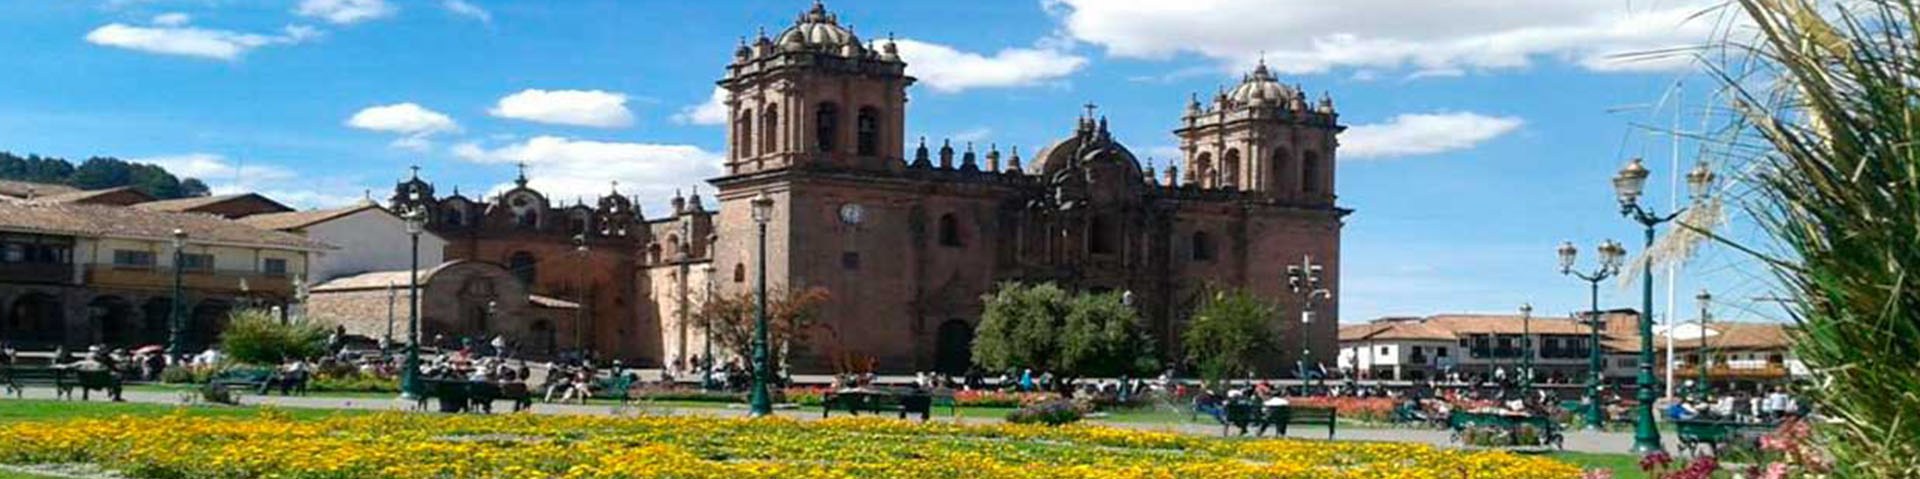 day tour cusco machu picchu qori inka travel agency peru 2